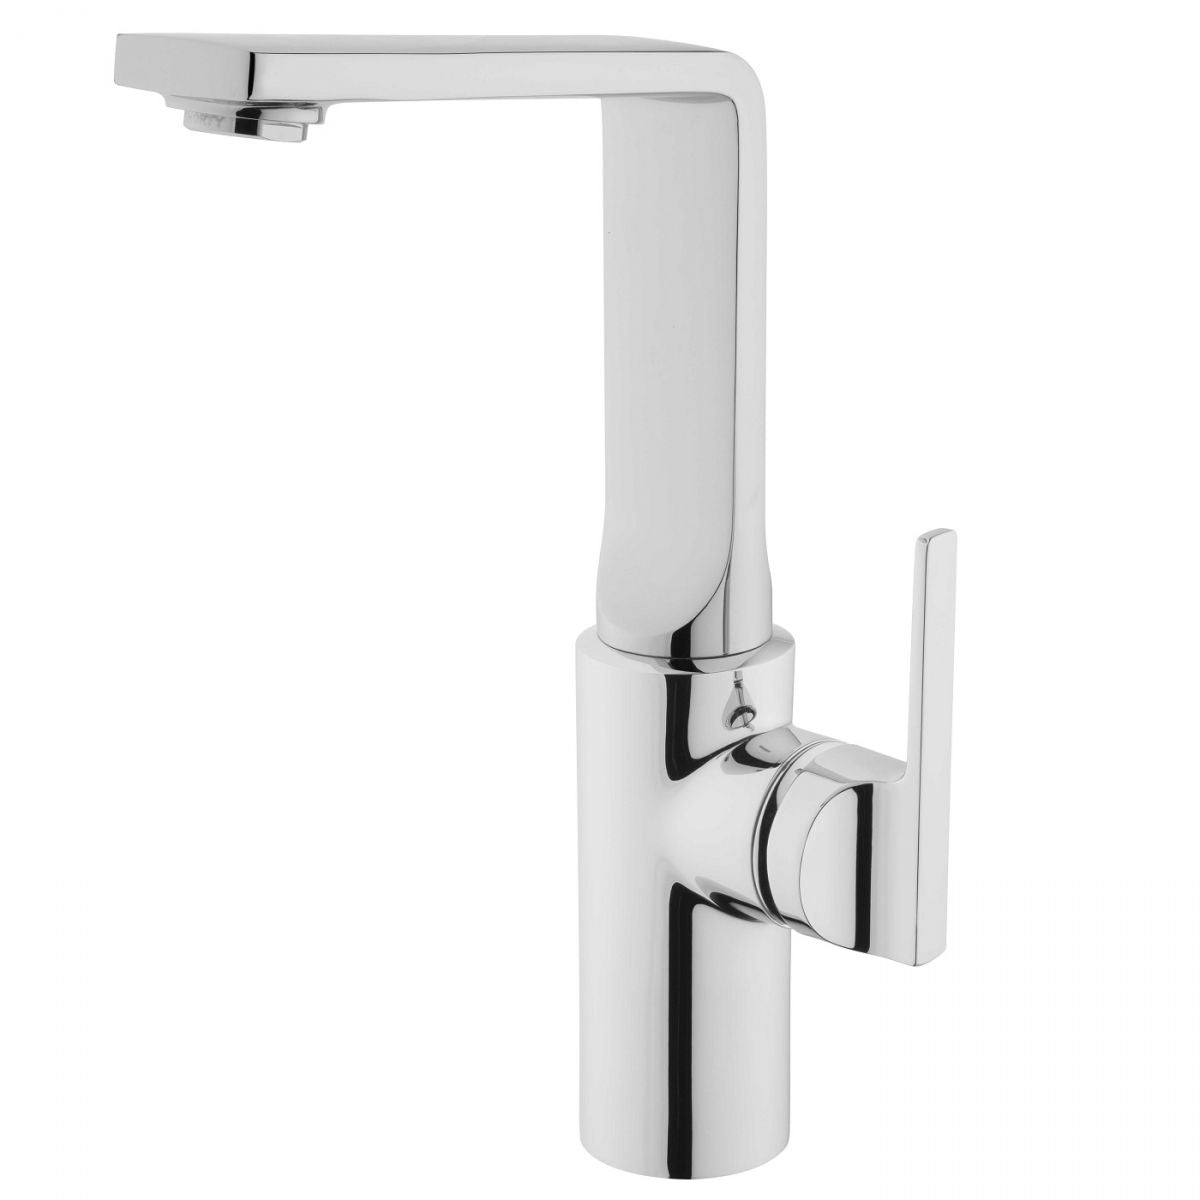 Suit L Tall Monobloc Basin Mixer - blueskybathrooms